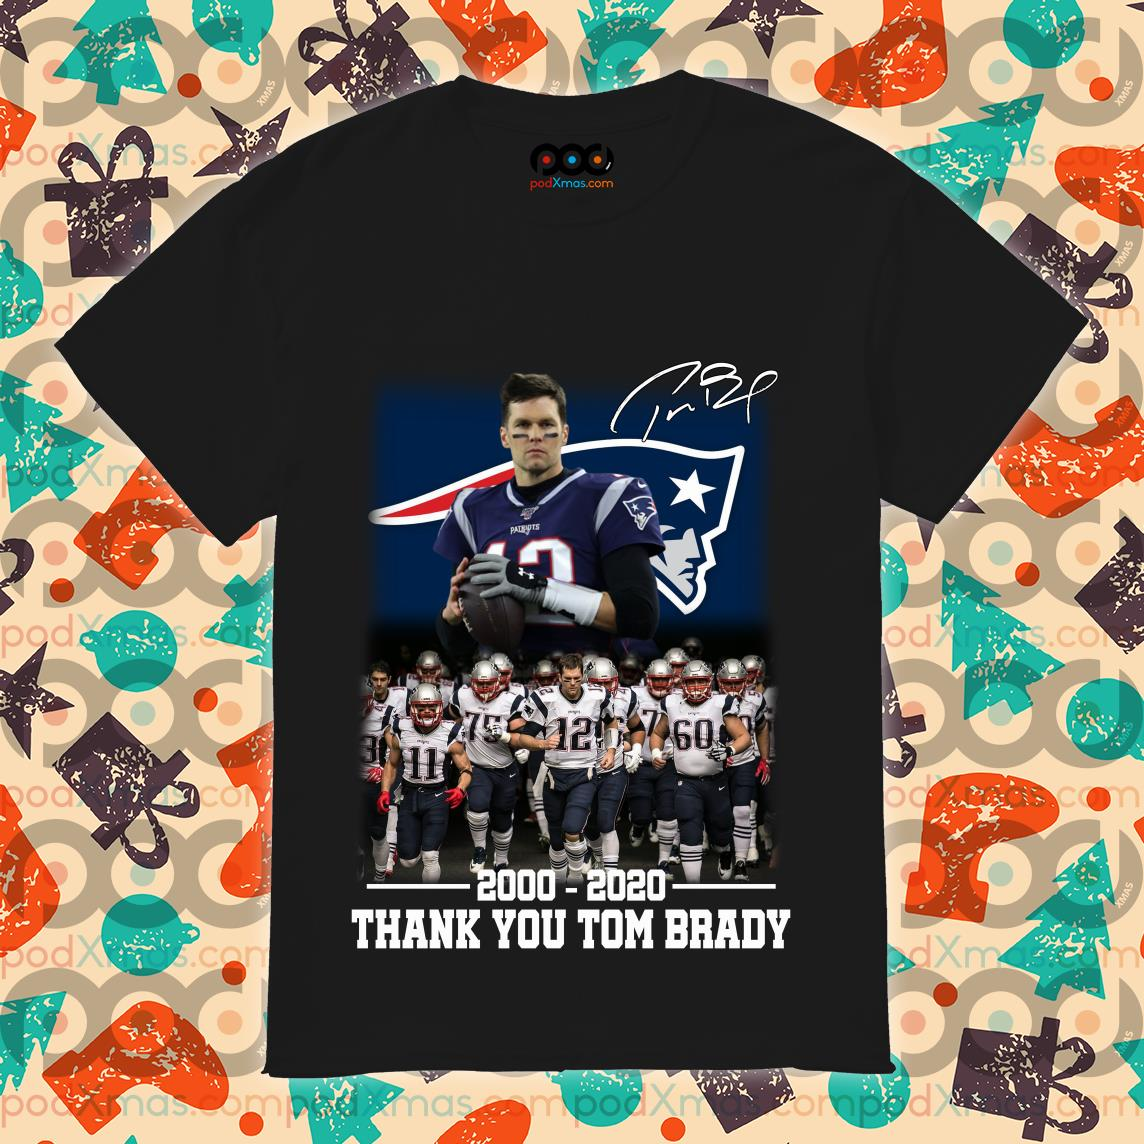 New England Patriots 2000-2020 thank you Tom Brady T-shirt